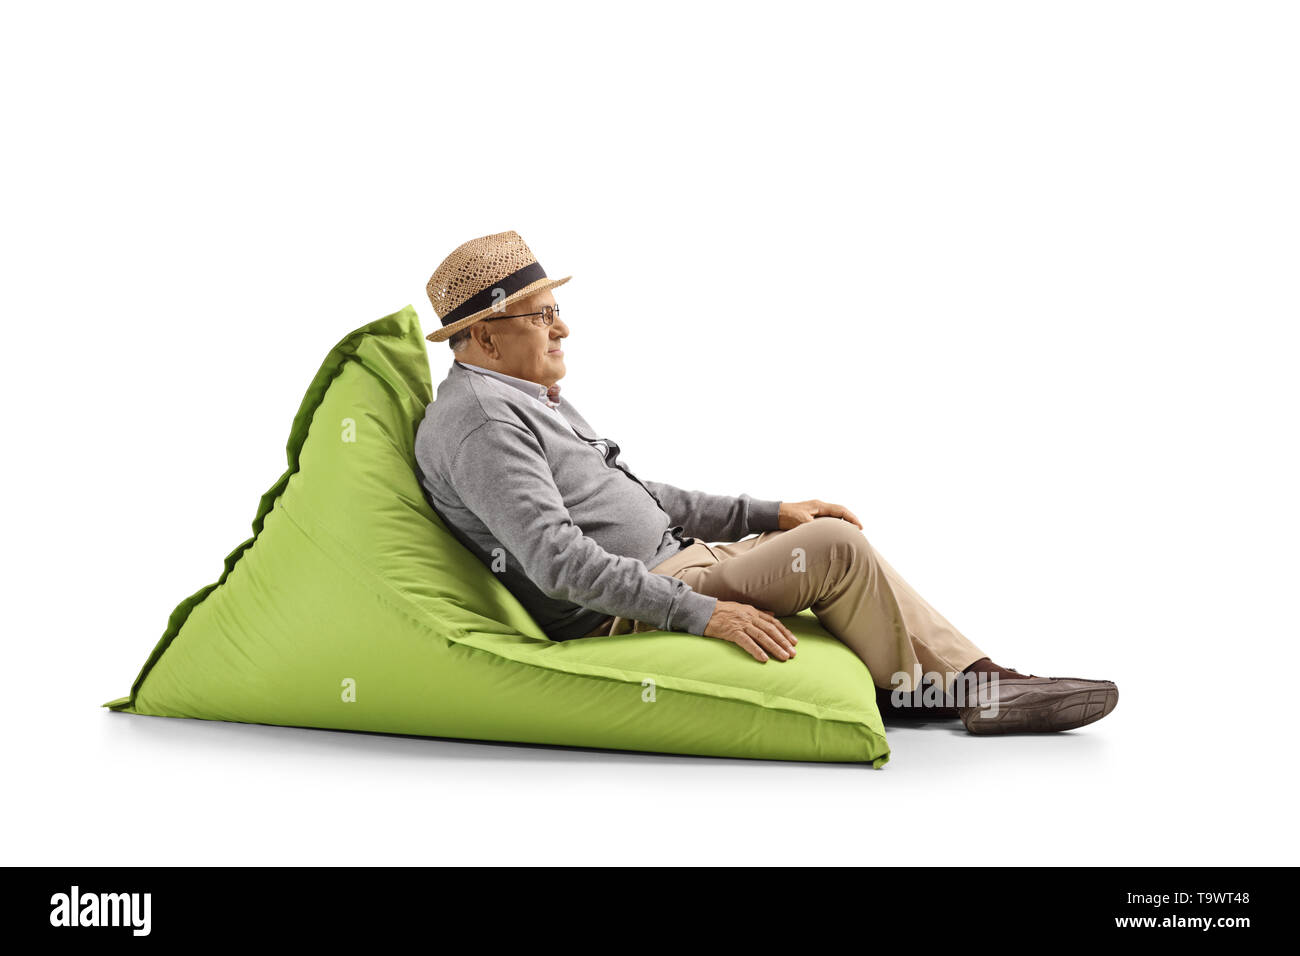 Full length shot of a senior gentleman resting on a bean-bag chair isolated on white background - Stock Image